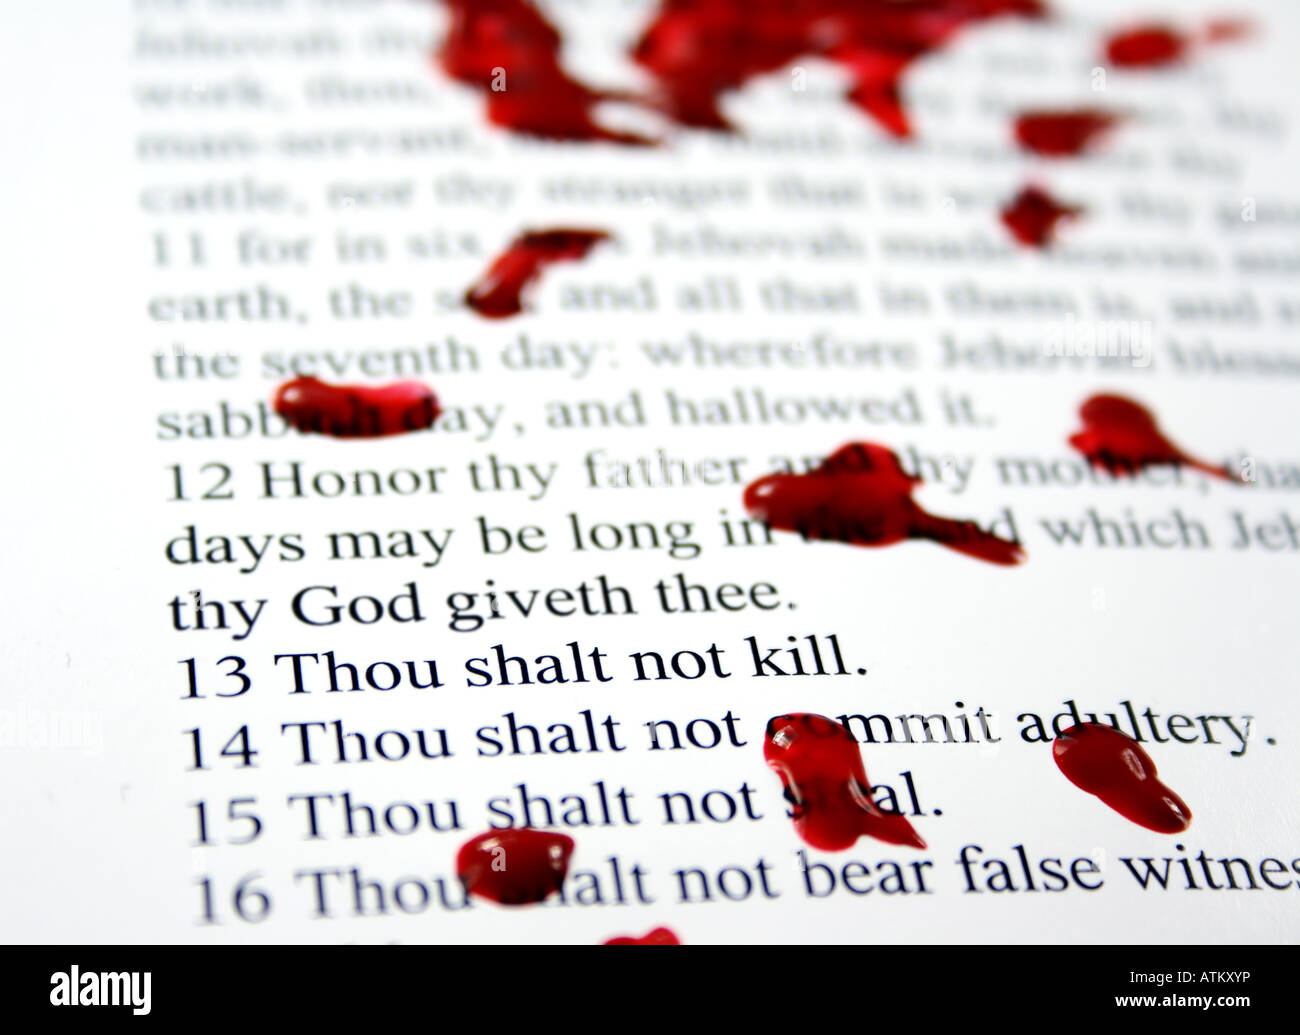 Thou shalt not kill part of the Decadent Decalogue series - Stock Image